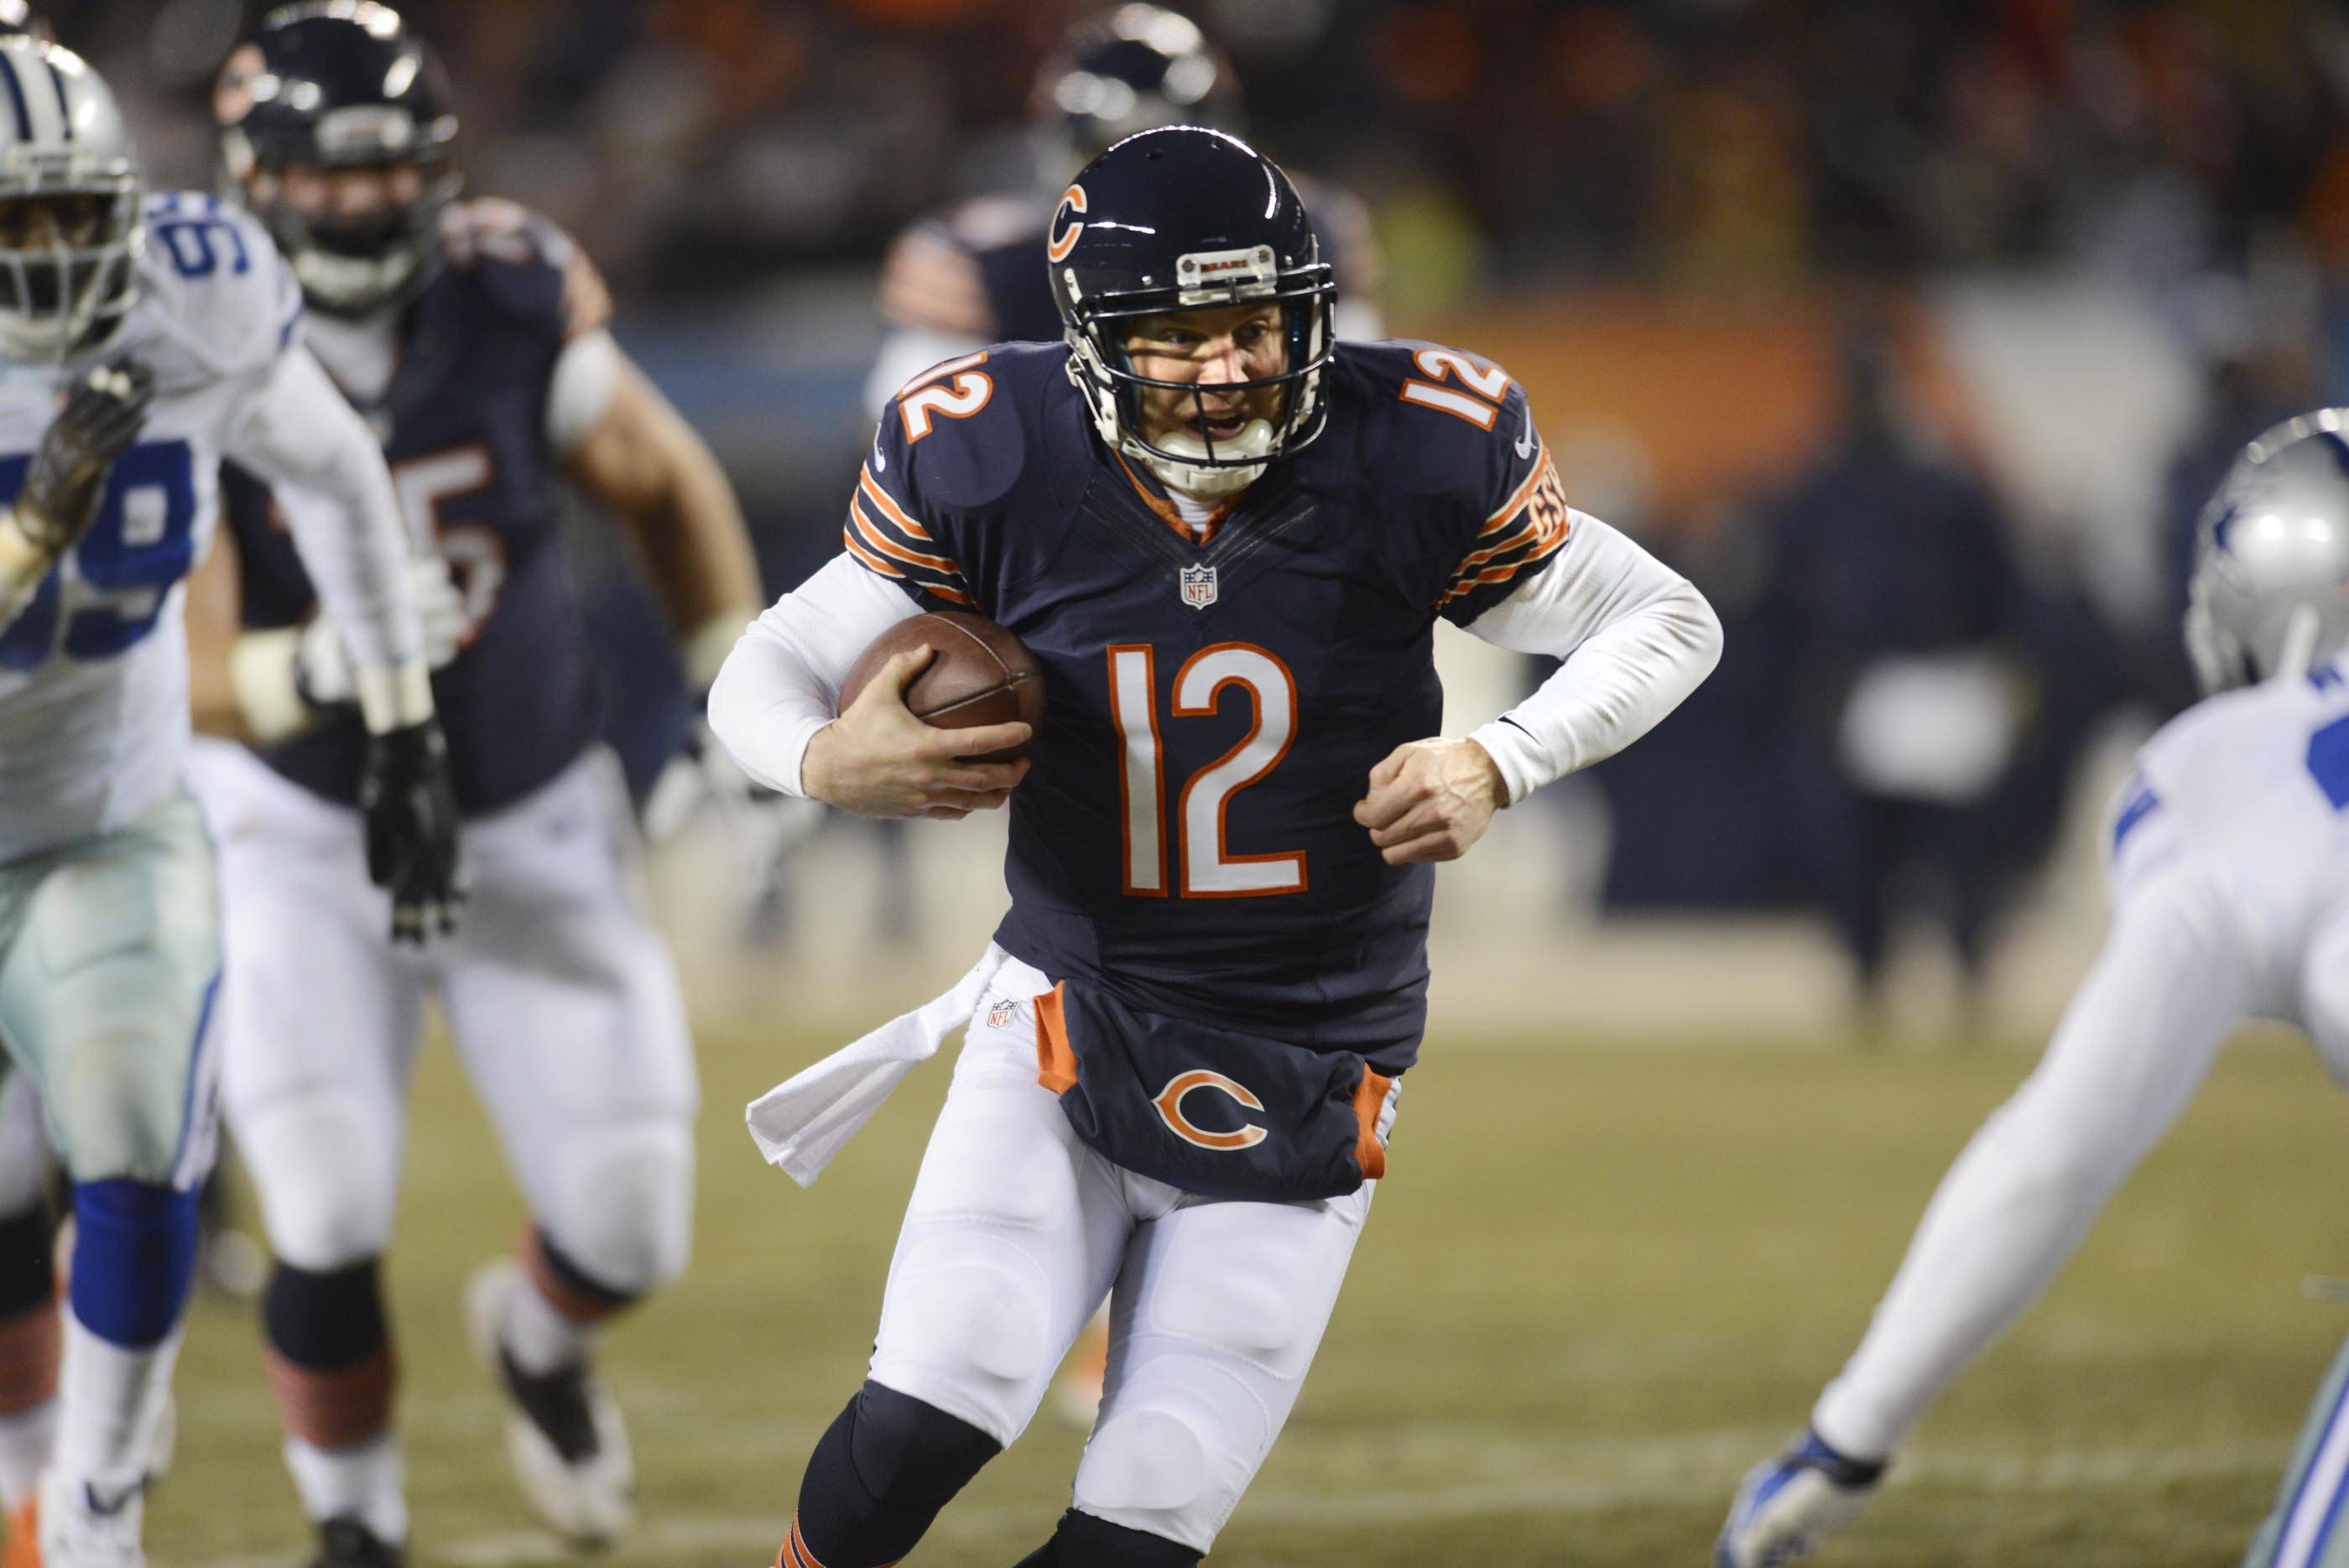 The Scorecard says let's hear it for former Bears backup quarterback Josh McCown and his finding a starting job and the riches that go with it down in Tampa Bay.